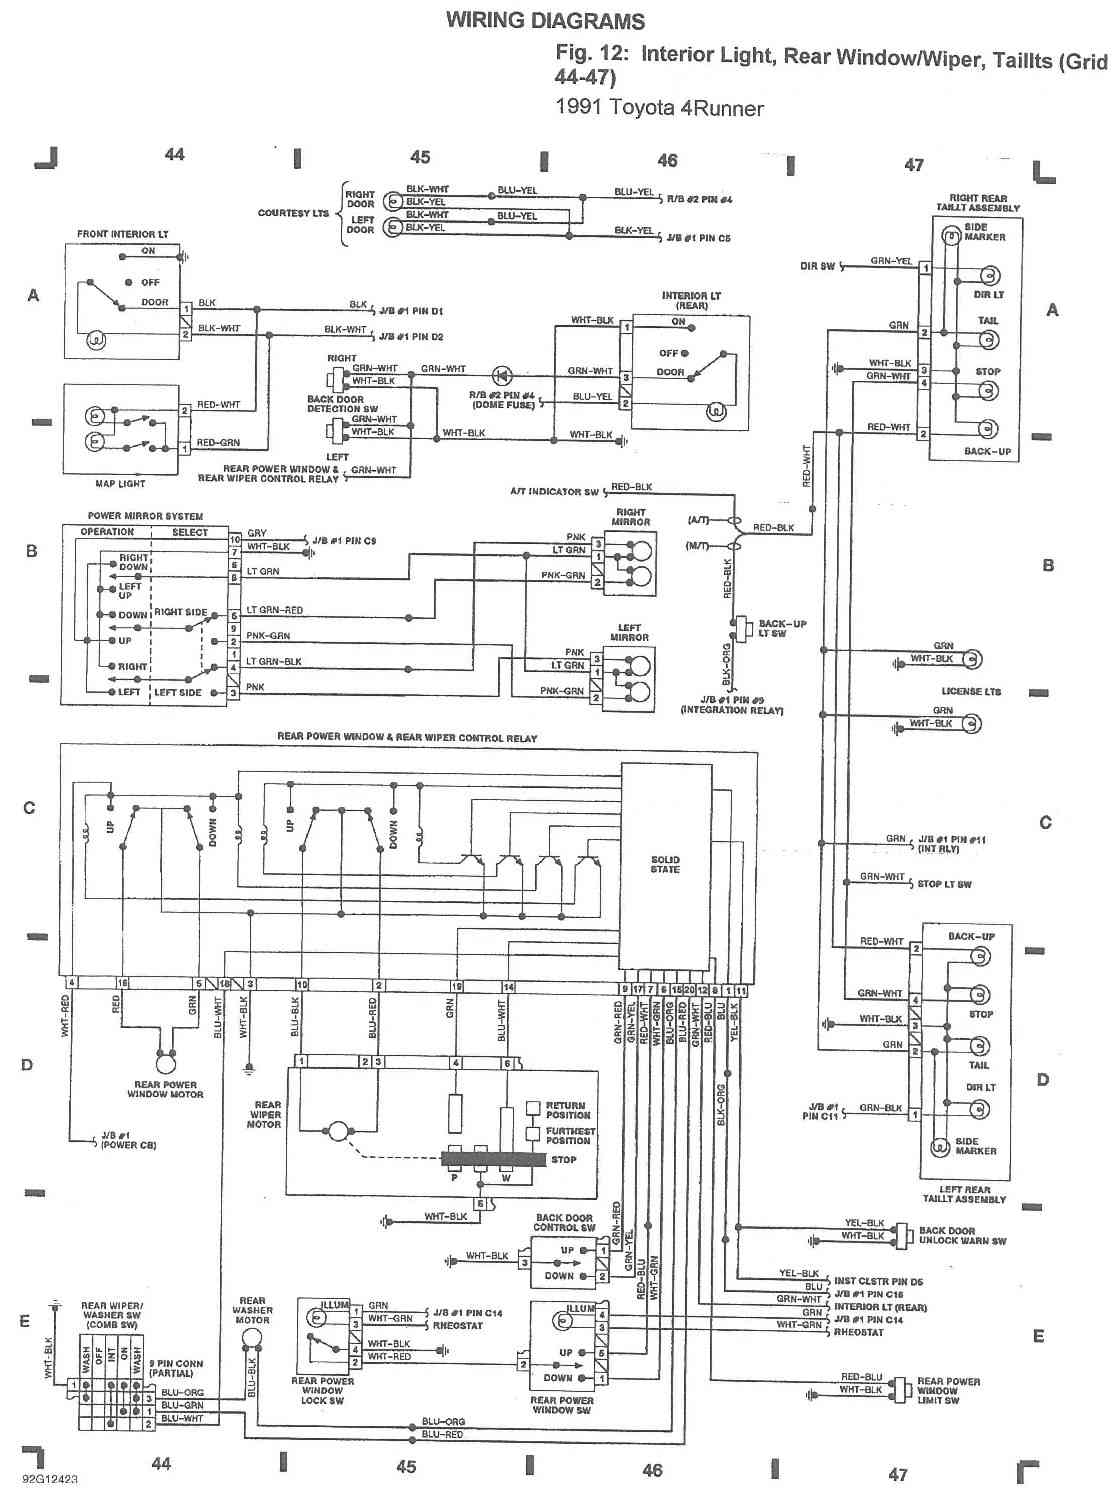 1991 Toyota Mr2 Wiring Diagram Library. 1991 Toyota Mr2 Wiring Diagram. Toyota. 87 Toyota Mr2 Window Wiring Diagram At Scoala.co